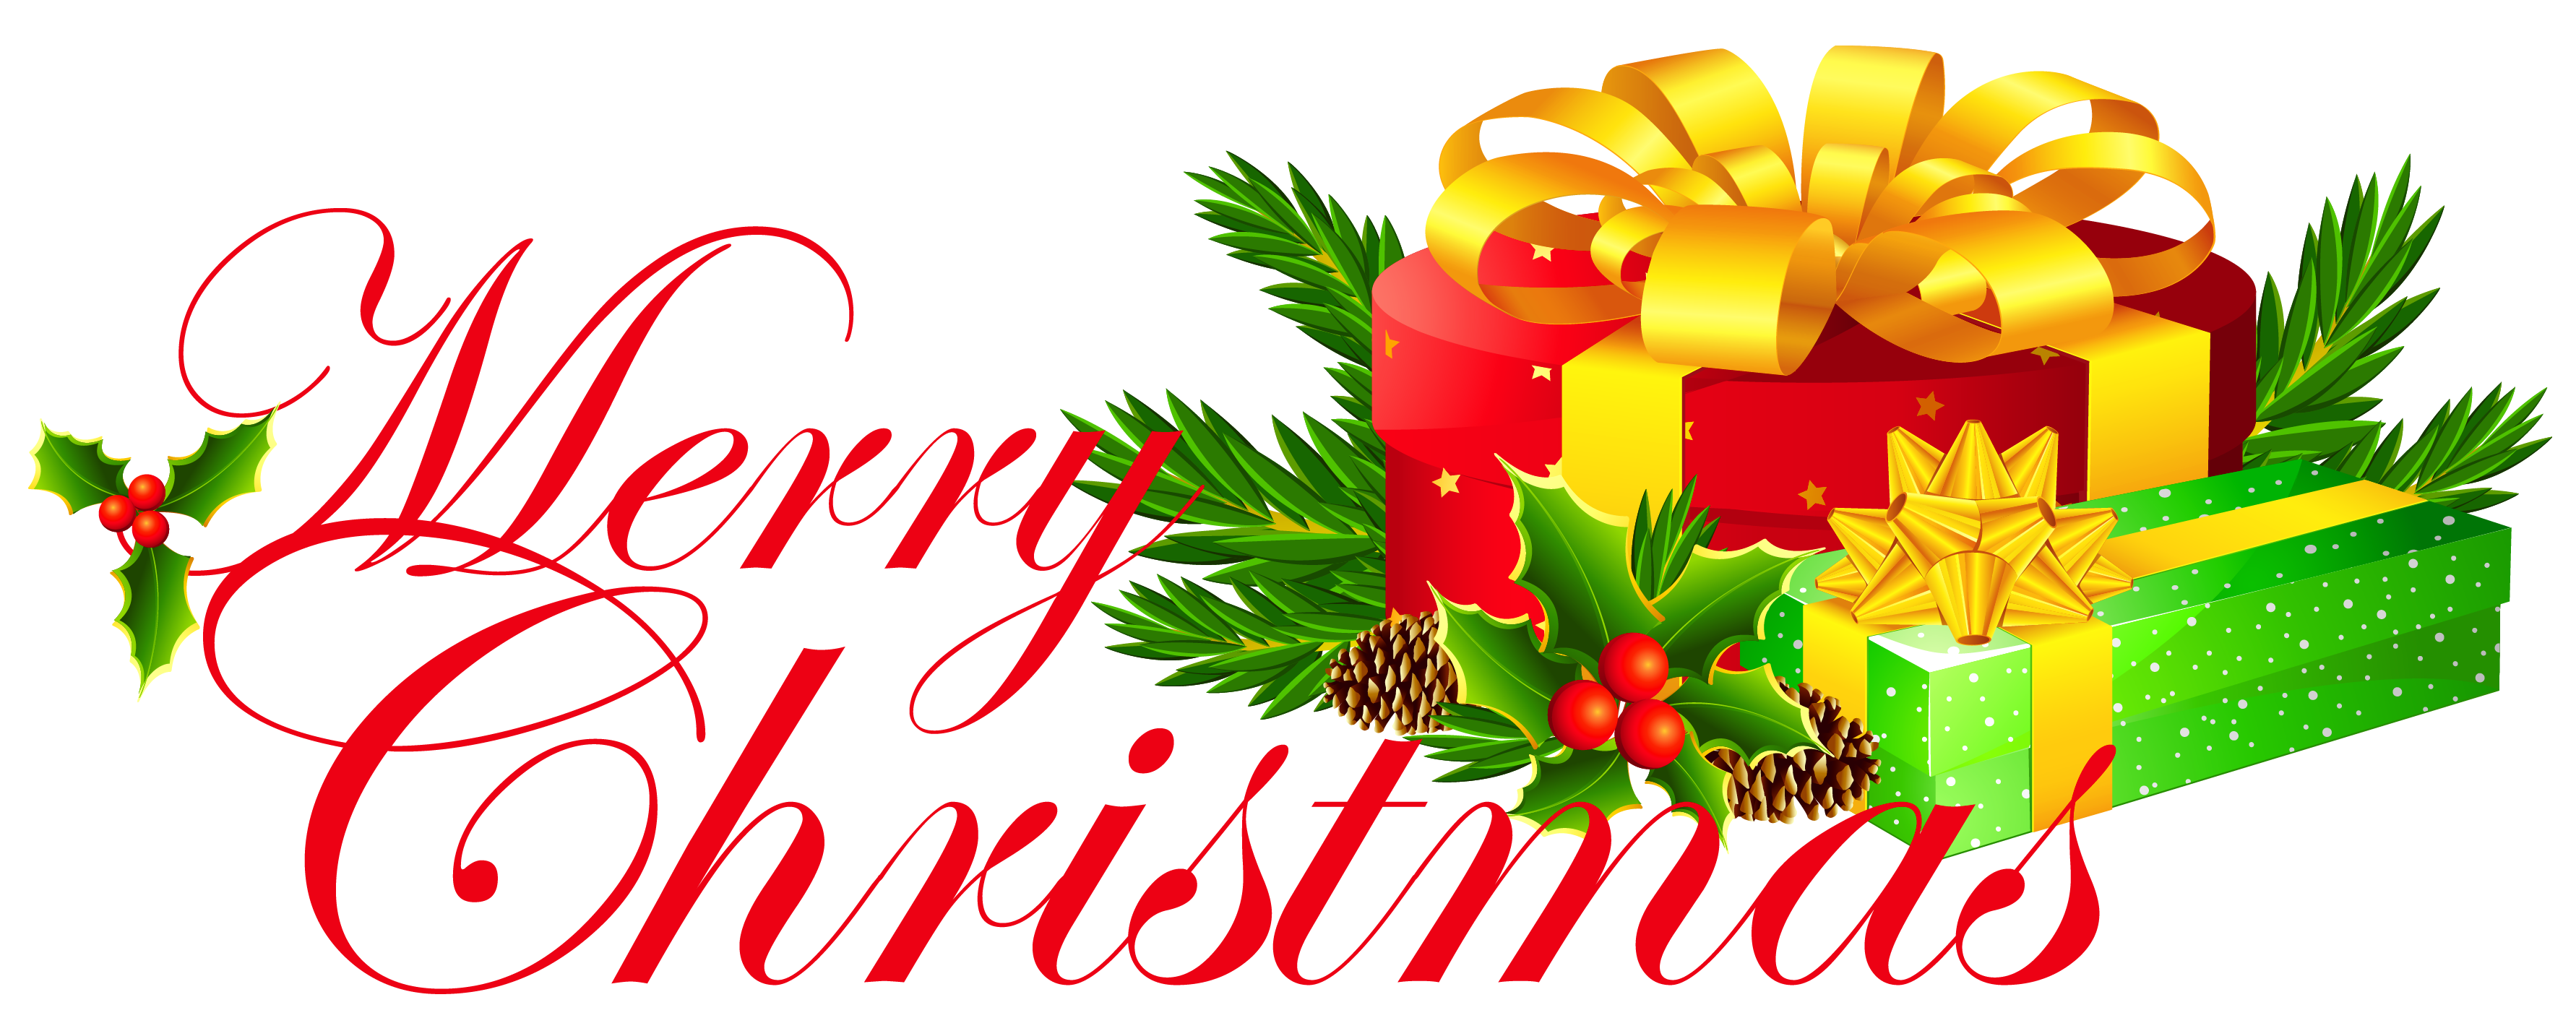 3565x1427 Transparent Merry Christmas With Presents Png Clipartu200b Gallery